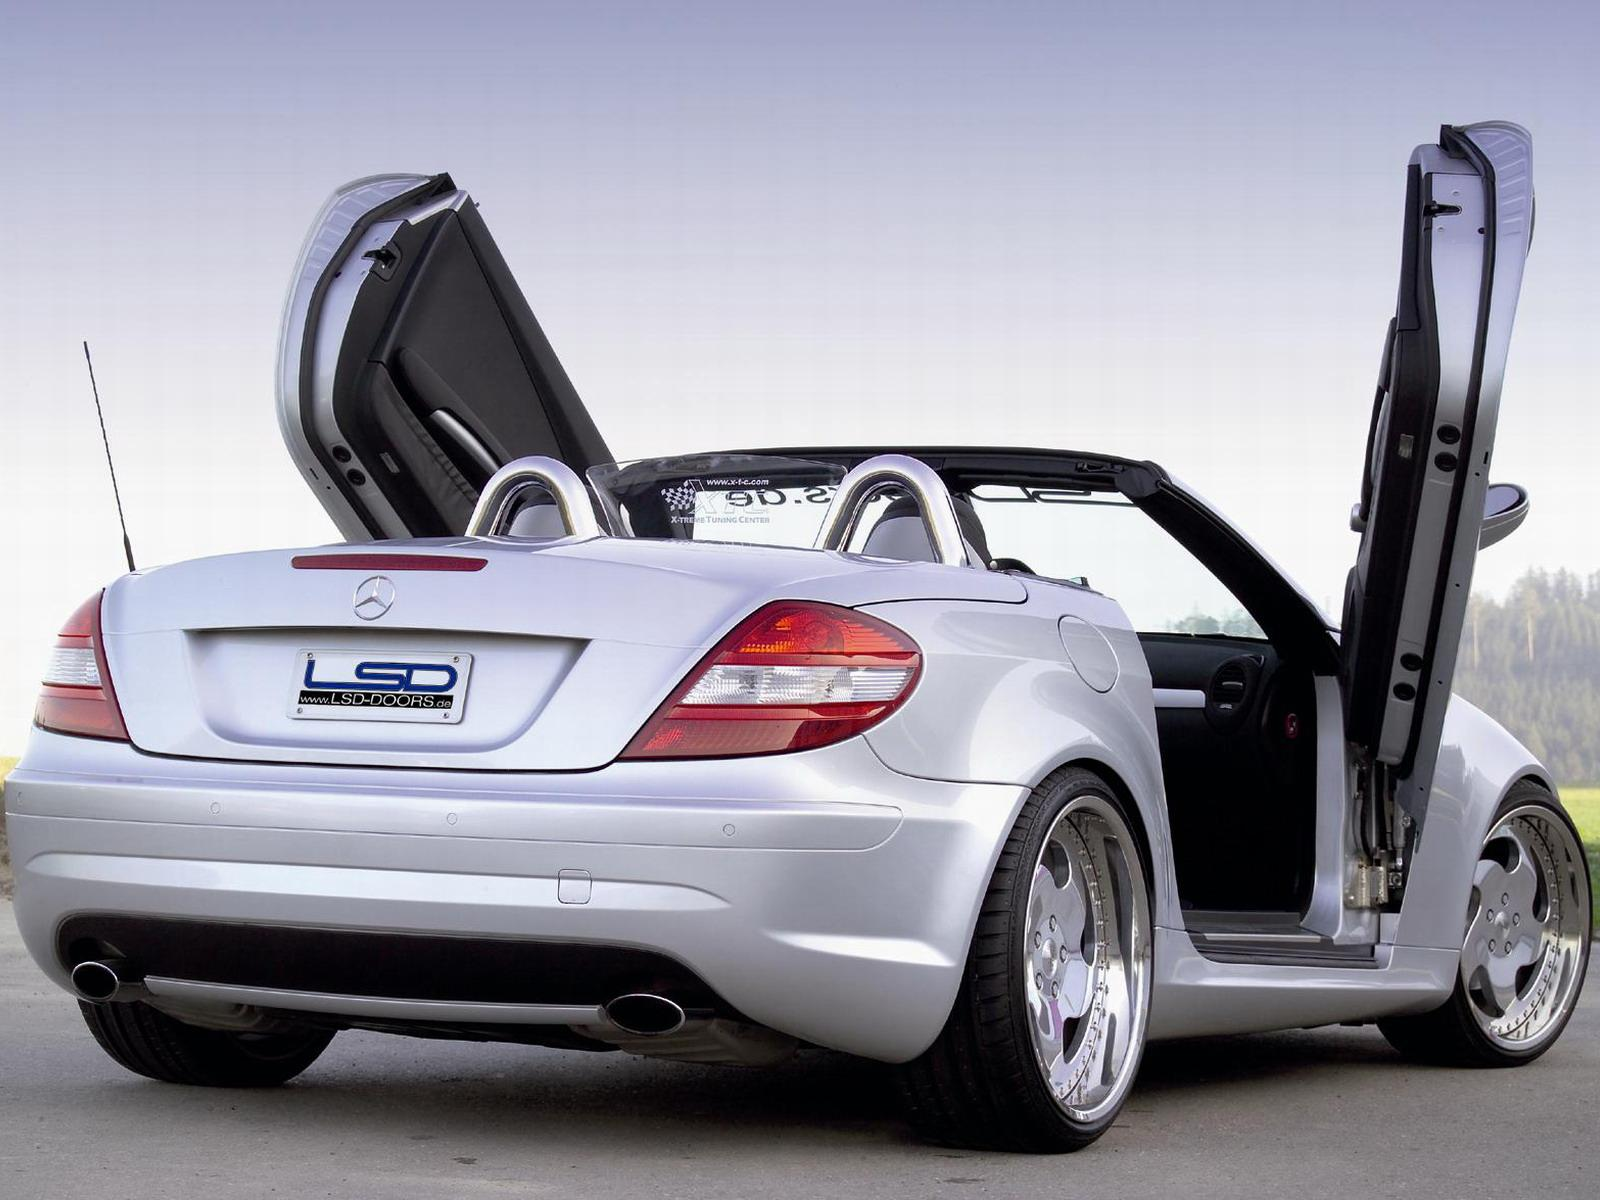 New LSD Doors SLK 200 pictures & LSD Doors SLK 200 photos - PhotoGallery with 6 pics| CarsBase.com